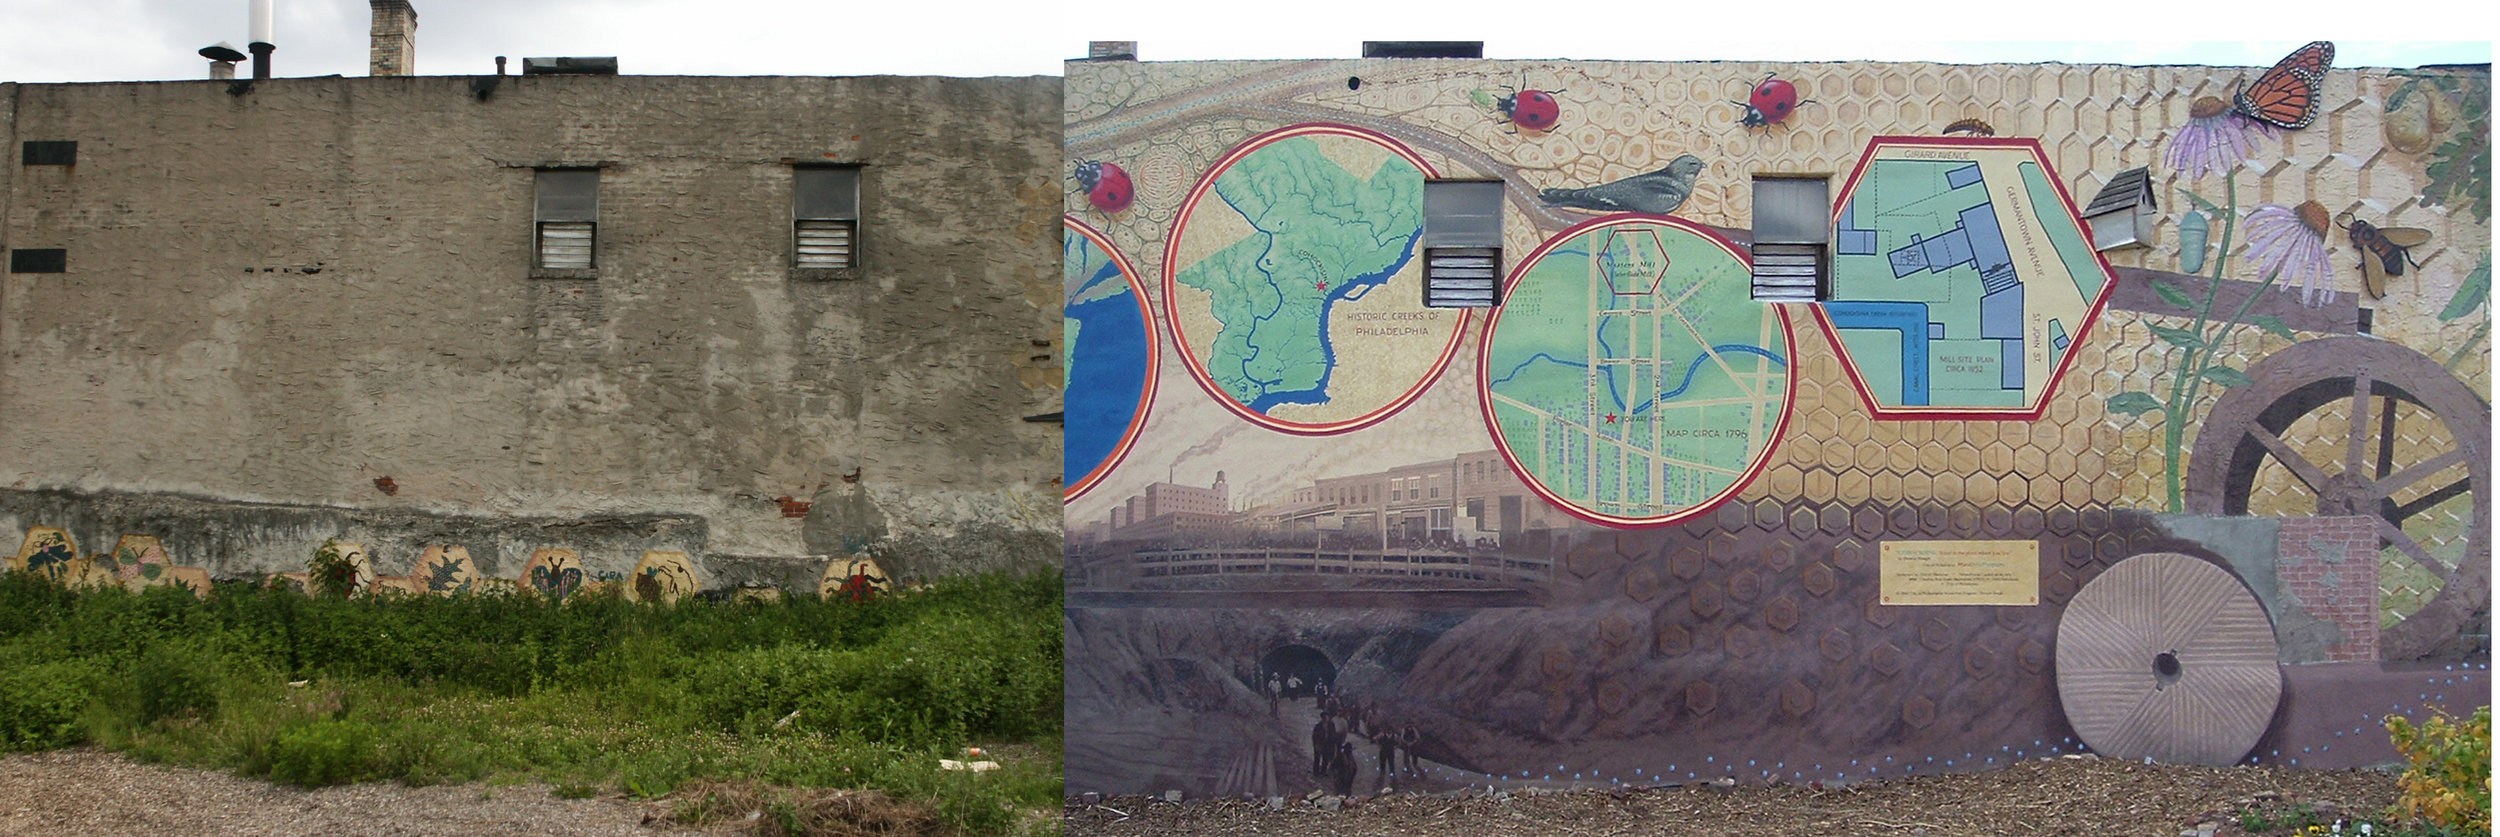 "BEFORE & AFTER: ""Cohocksink"" mural done with the Mural Arts Program City of Philadelphia 3rd Street above Poplar at Liberty Lands Park"